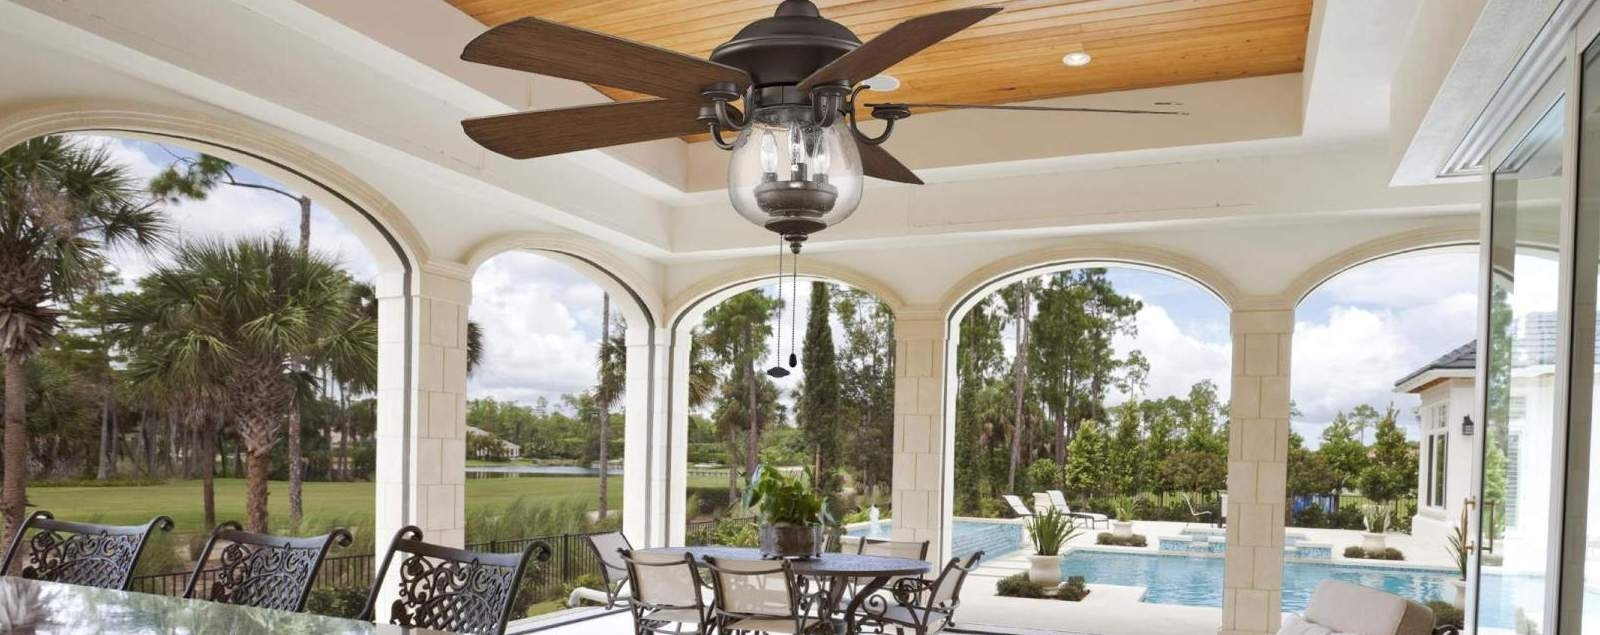 Gold Coast Outdoor Ceiling Fans Throughout Most Current Outdoor Ceiling Fans – Shop Wet, Dry, And Damp Rated Outdoor Fans (Gallery 19 of 20)